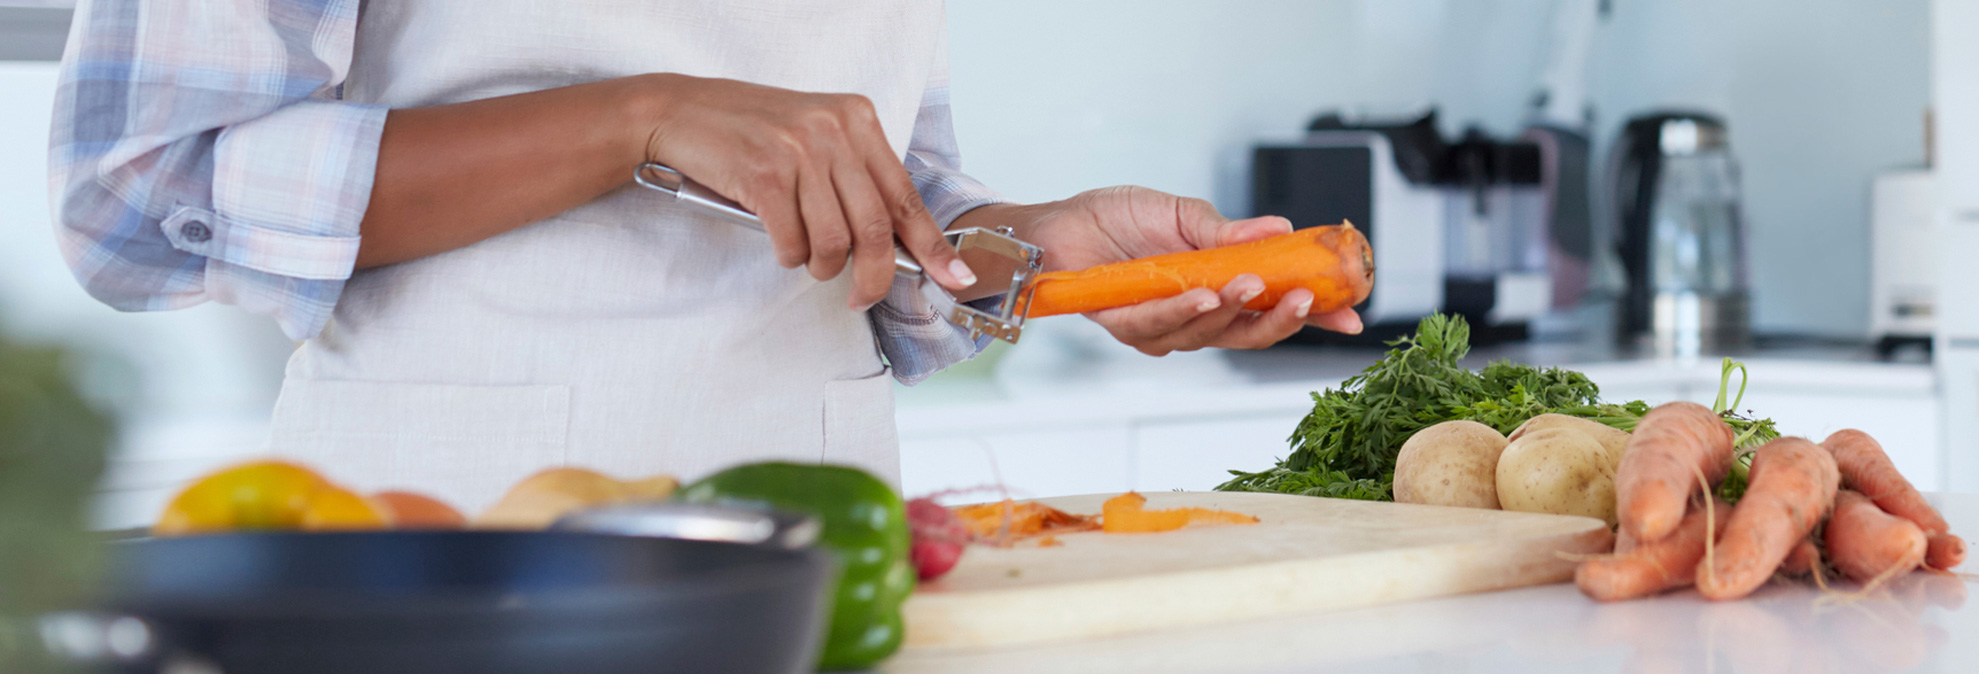 7 Great Gadgets for Holiday Food Prep